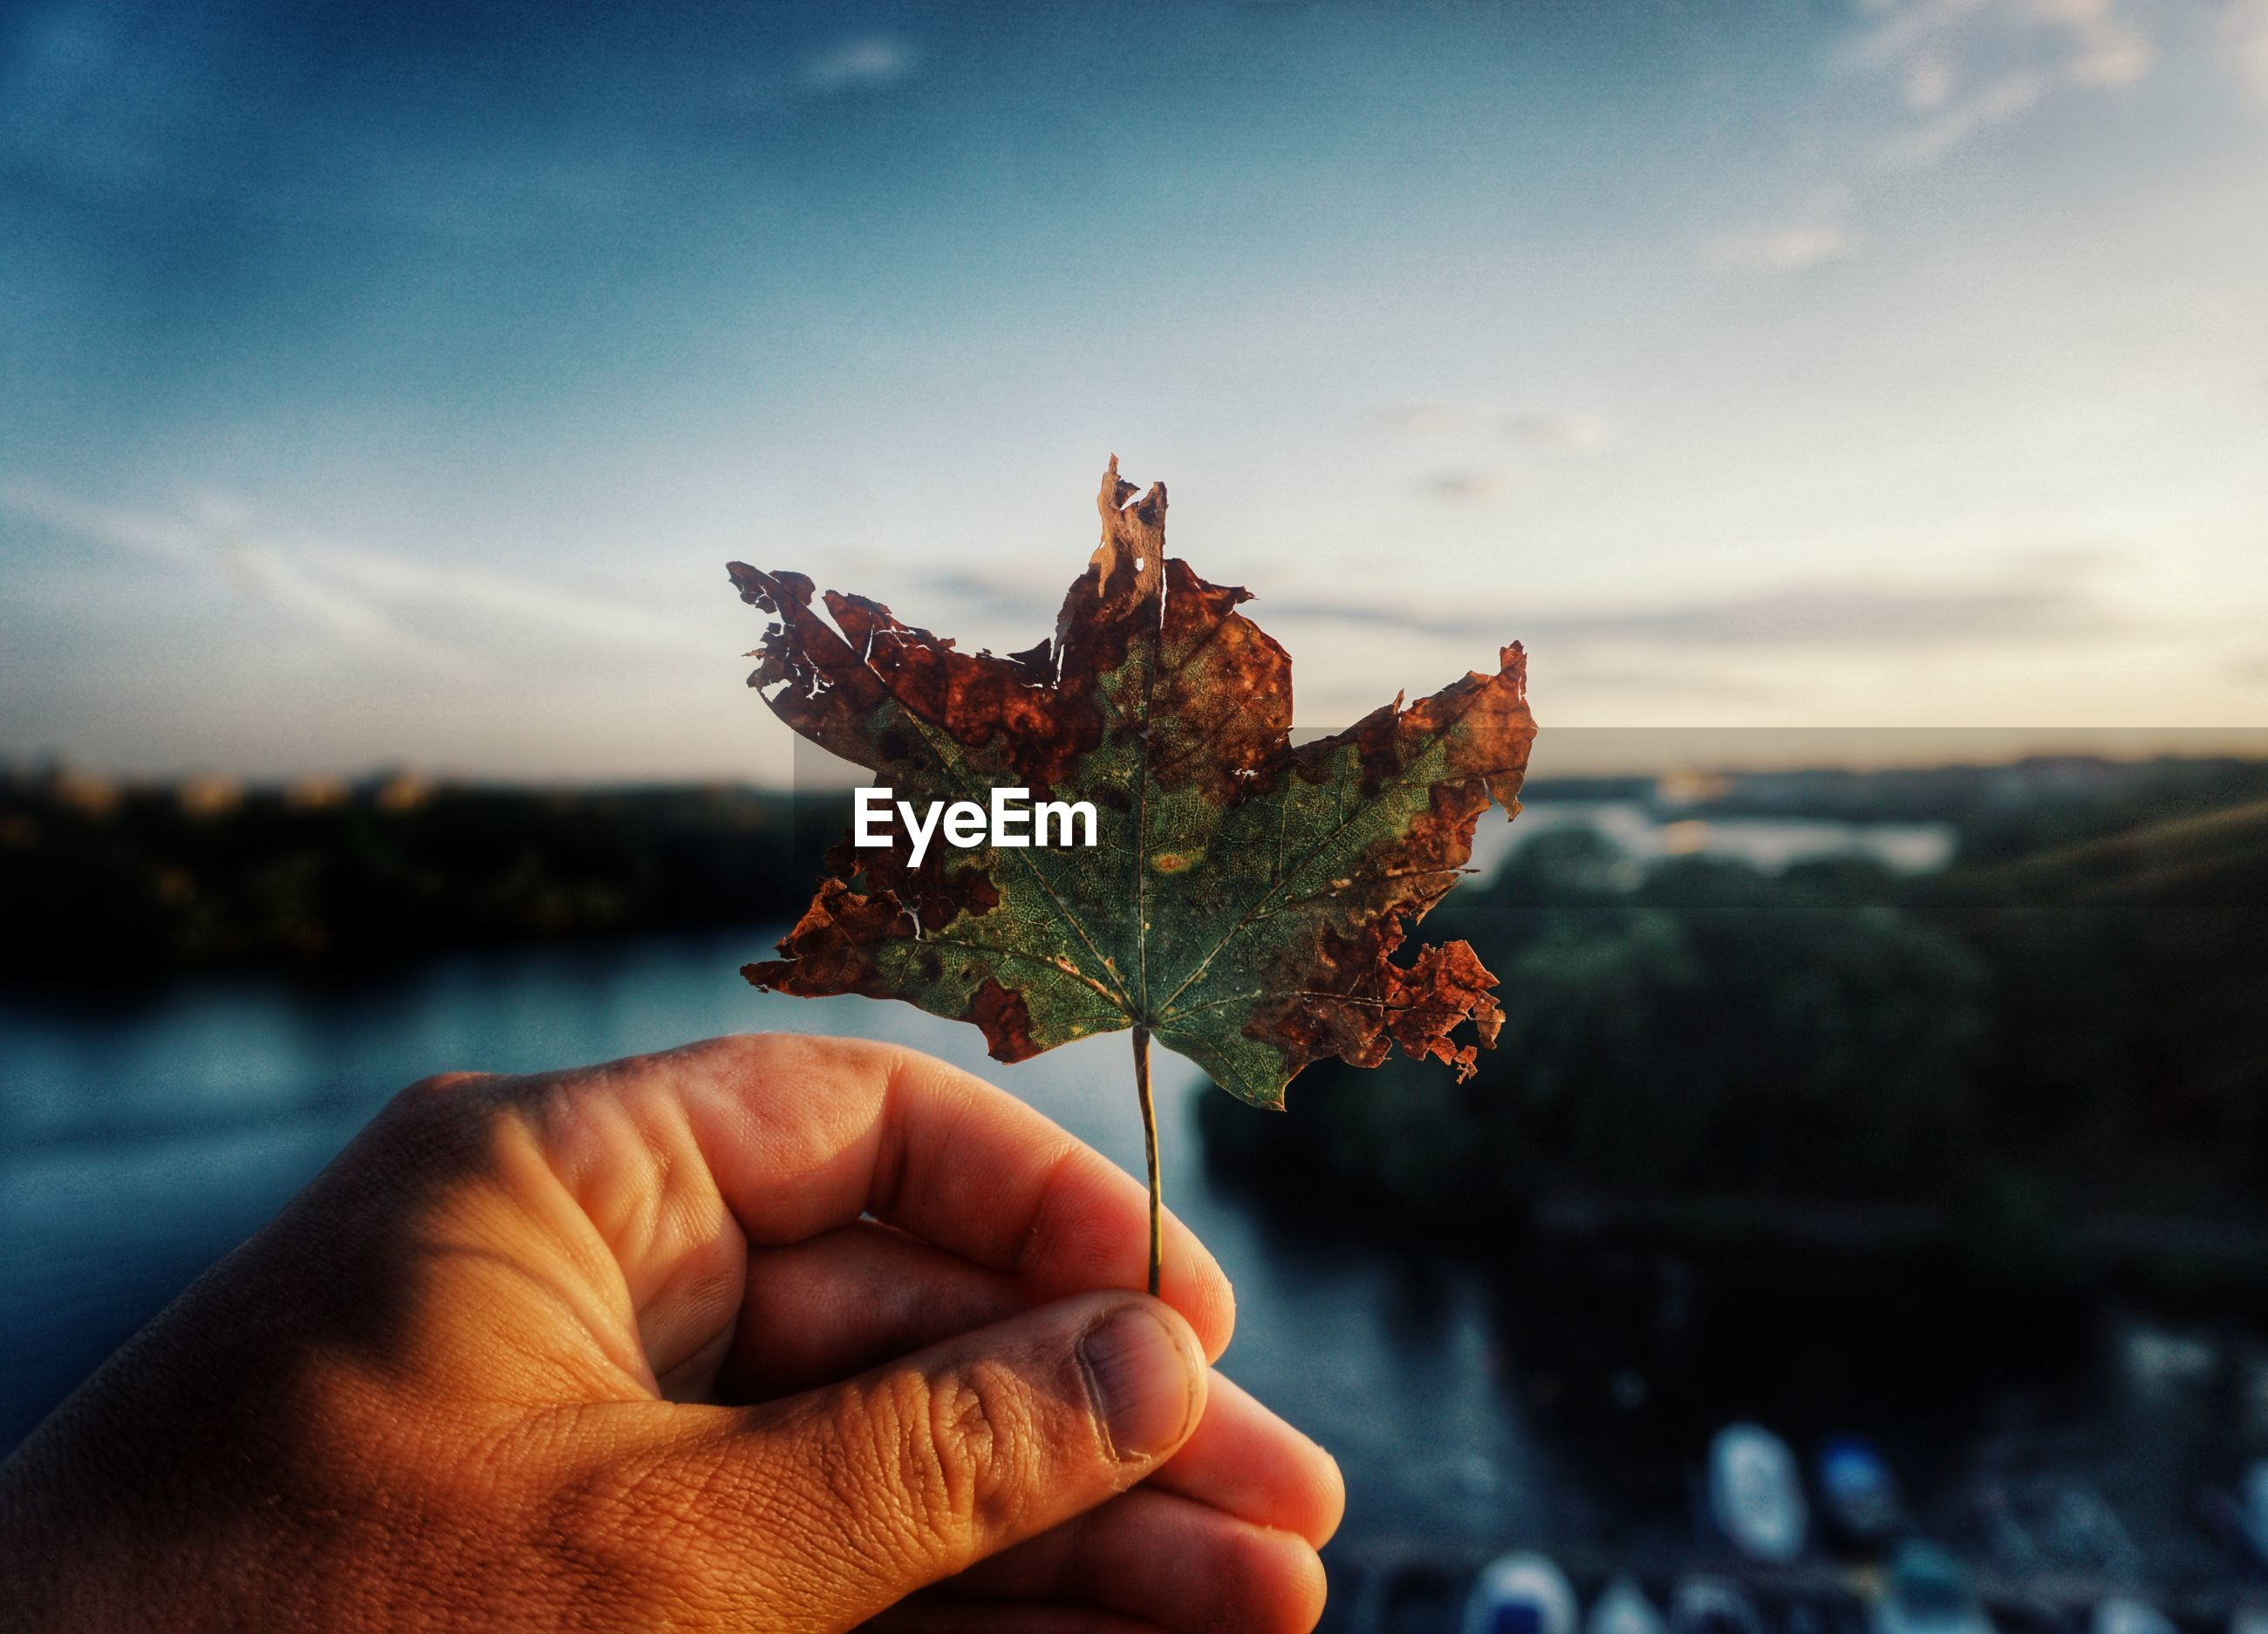 Cropped hand of person holding autumn leaf against sky